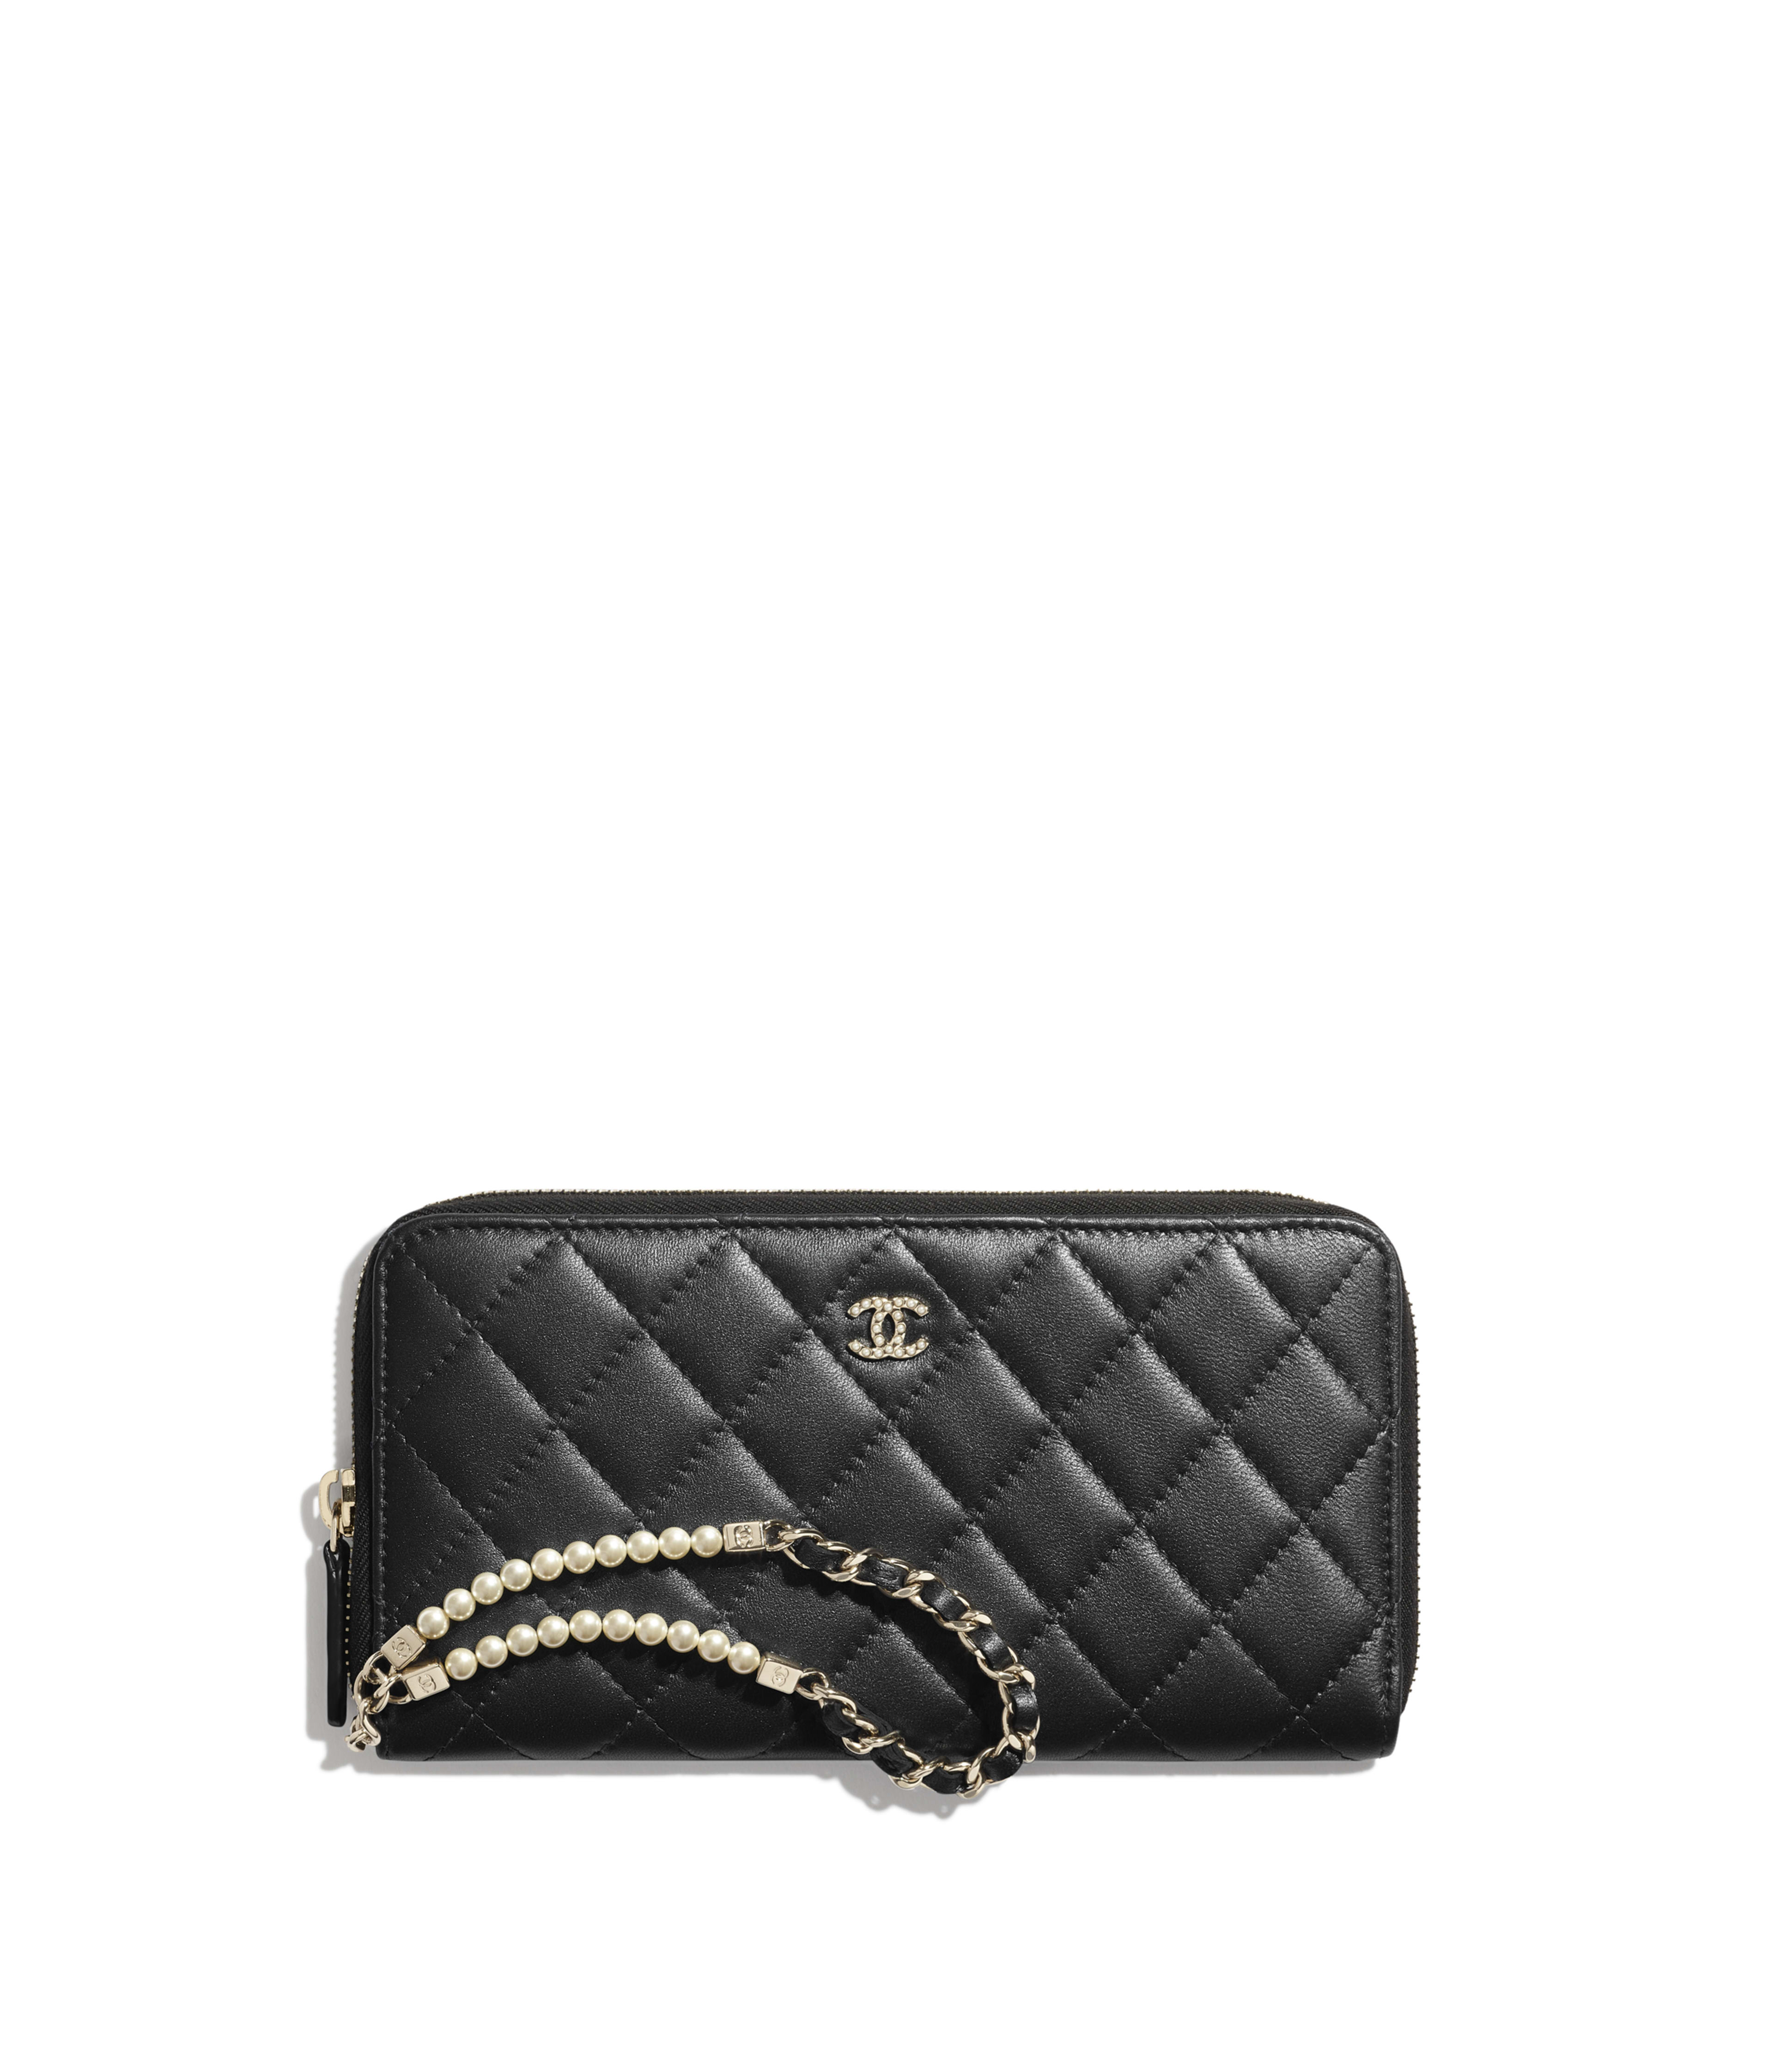 Long Wallets Small Leather Goods Chanel Shop over 2,000 top chanel wallet and earn cash back all in one place. chanel